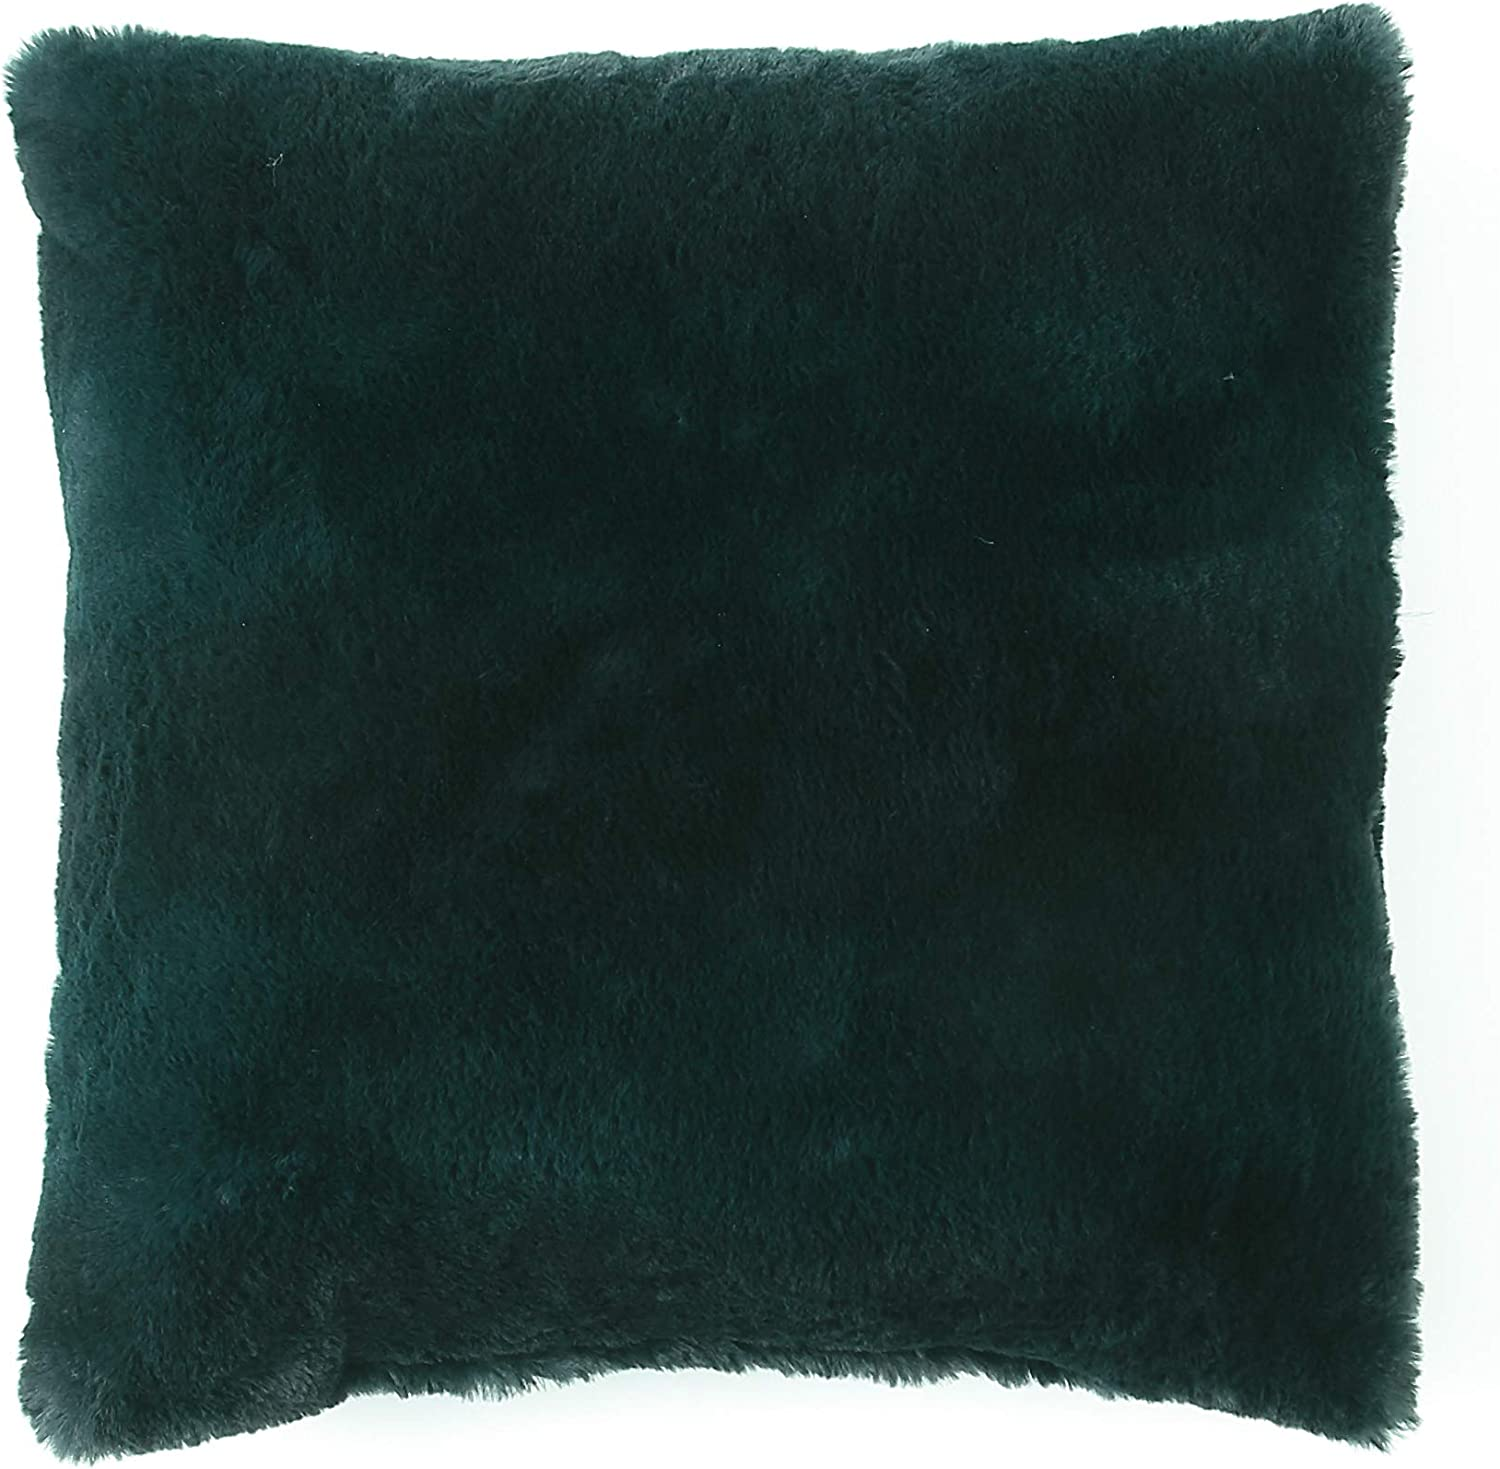 Morgan Home Fashions Decorative Faux Fur Throw Pillow Cushion Covers- 18 x 18 inches, Soft, Cozy and Warm, Home Decor with Multiple Colors Available to Match Most Styles and Blankets (Emerald, 1)